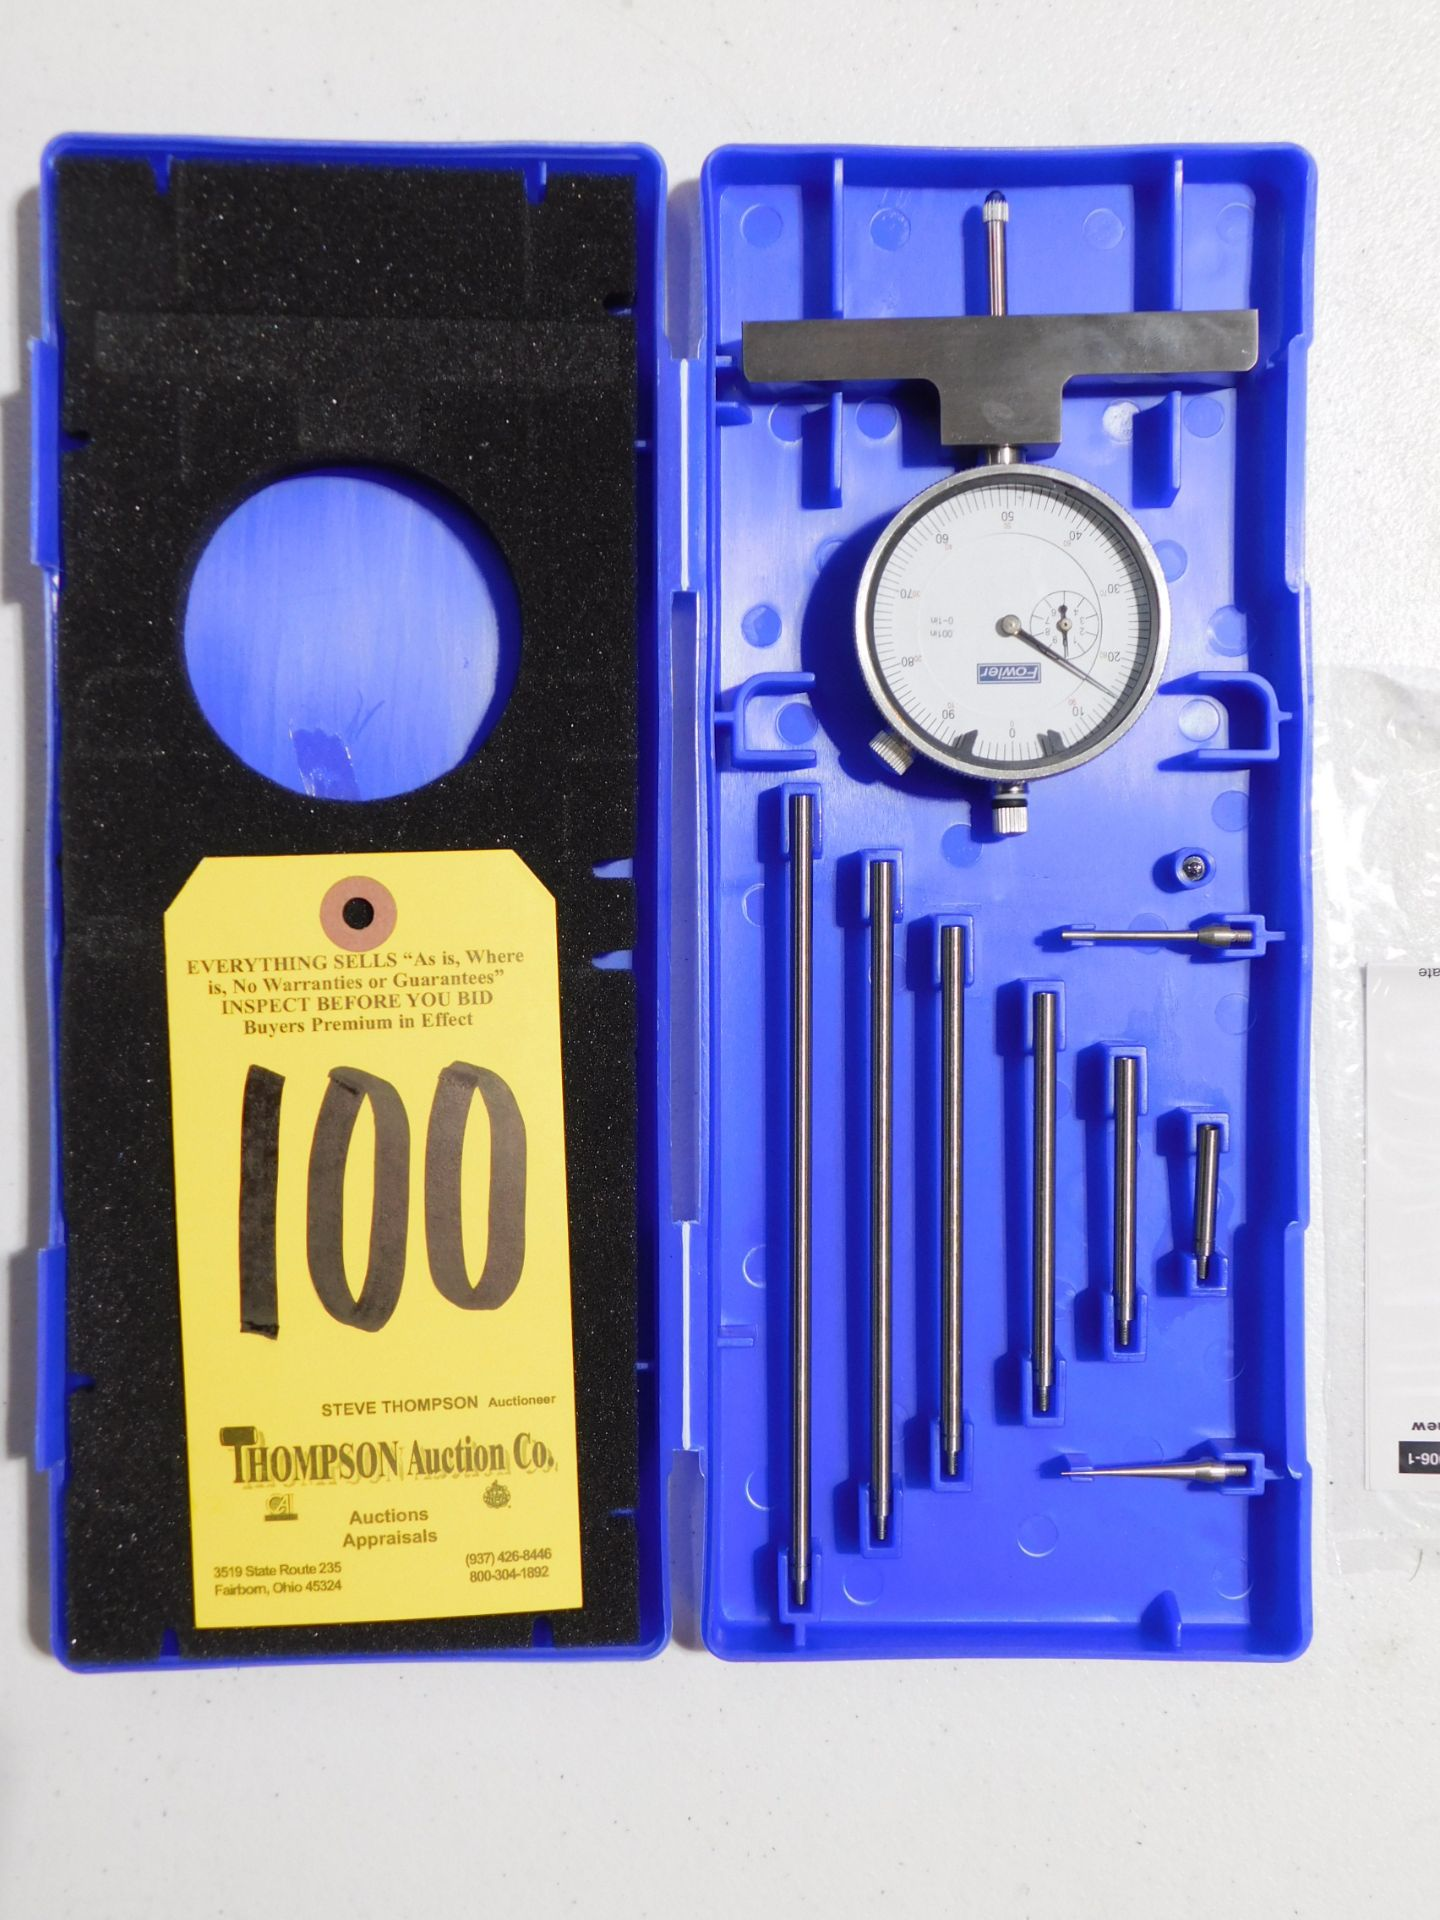 """Lot 100 - Fowler Dial Depth Gage, 0-22"""", Lot Location 3204 Olympia Dr. A, Lafayette, IN 47909"""